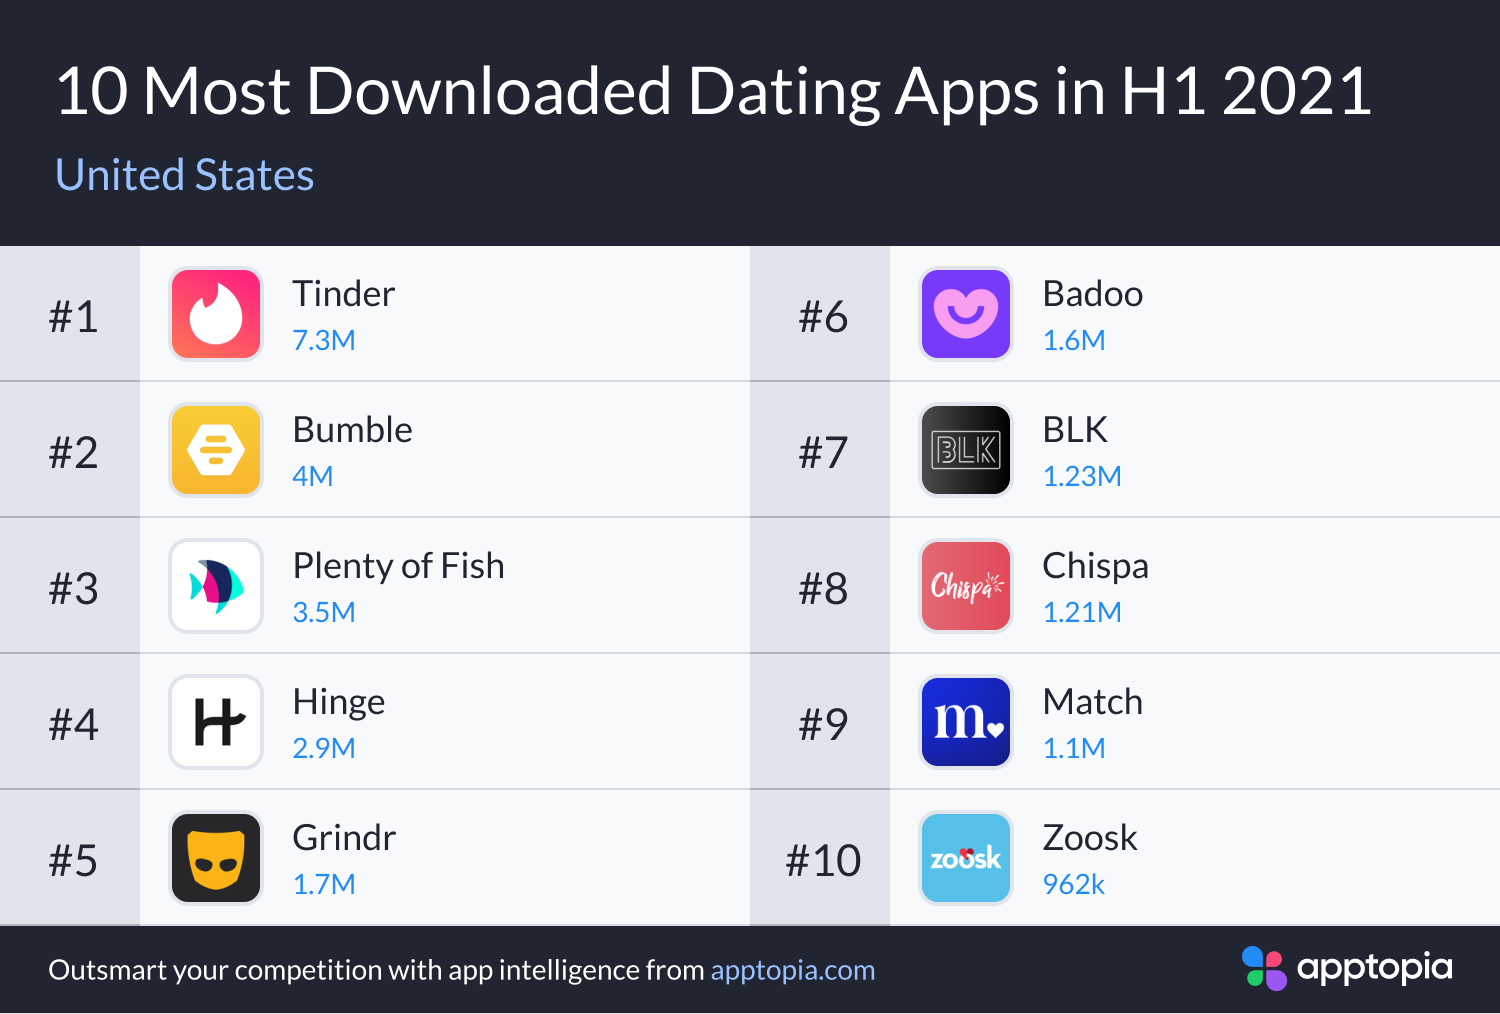 most downloaded US dating apps H1 2021